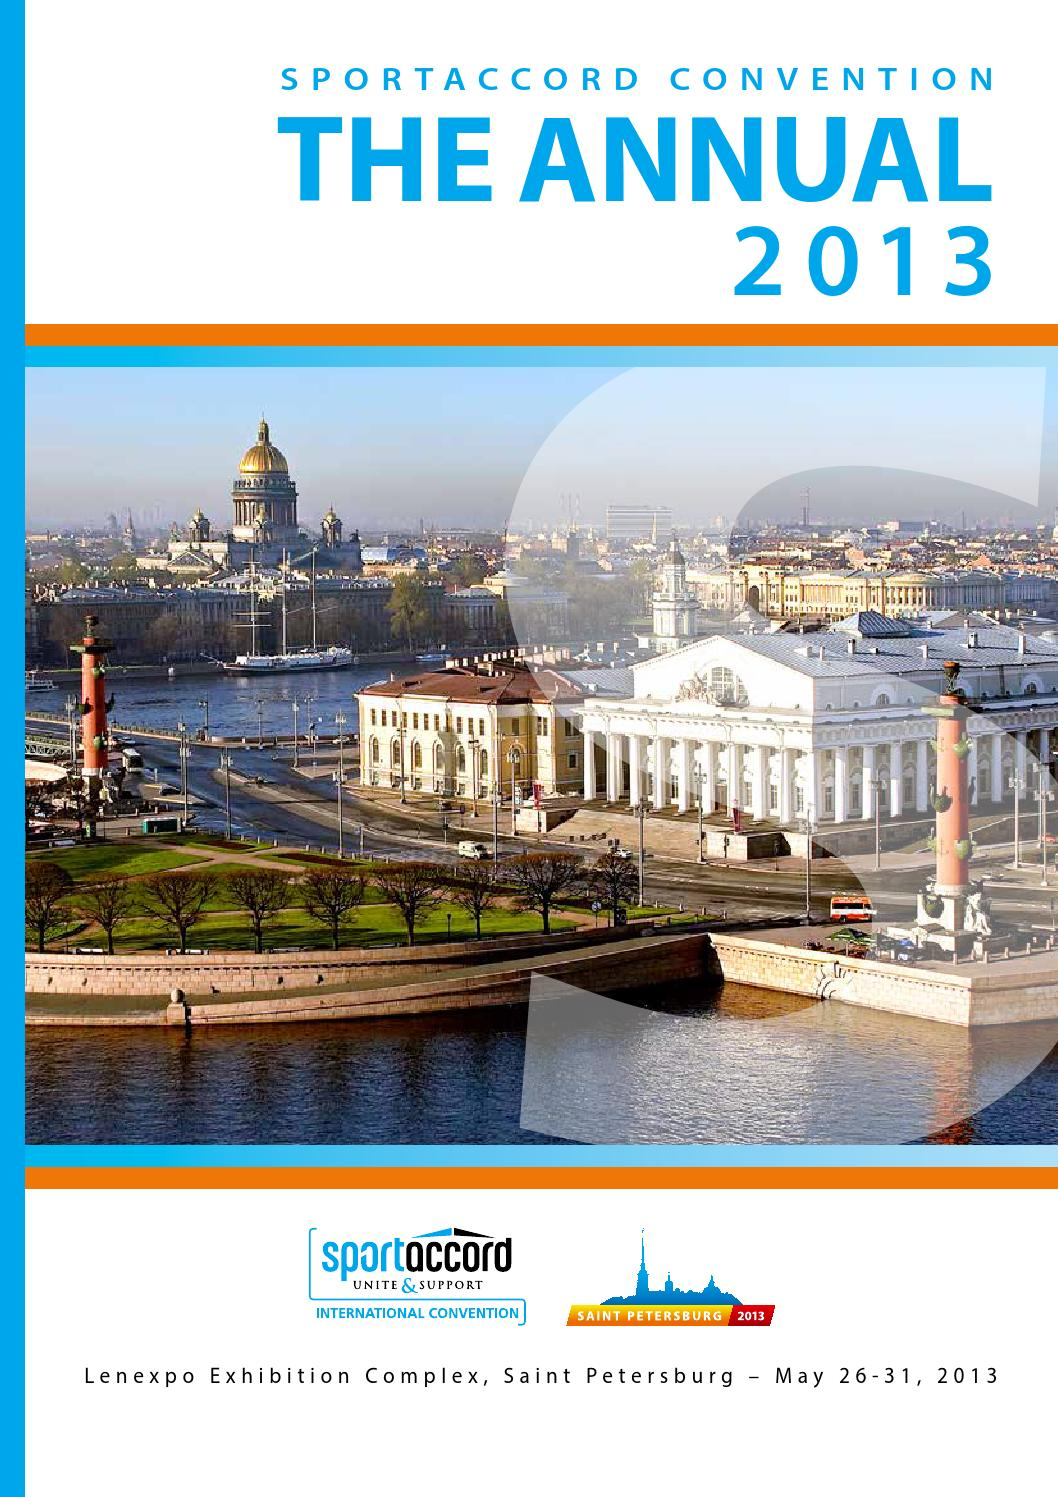 2013 Annual Sportaccord Convention By Sportaccord Convention Issuu